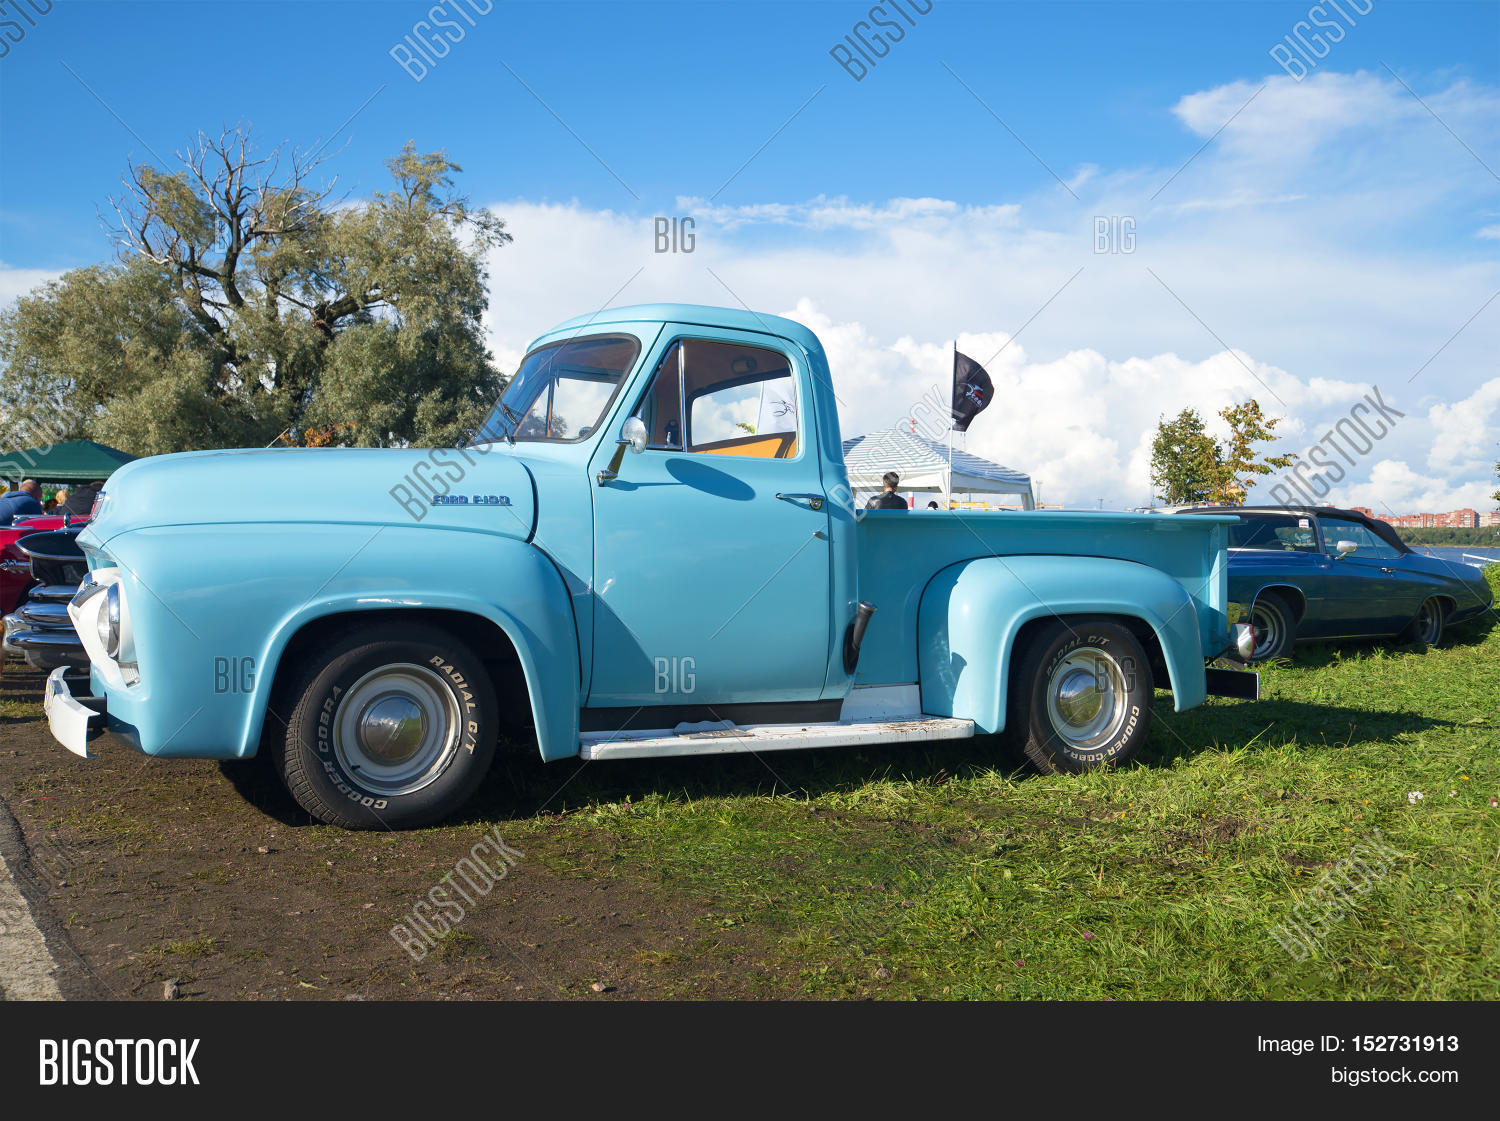 Kronstadt Russia Image Photo Free Trial Bigstock 1954 Ford F100 Pickup Truck September 04 2016 Model Year